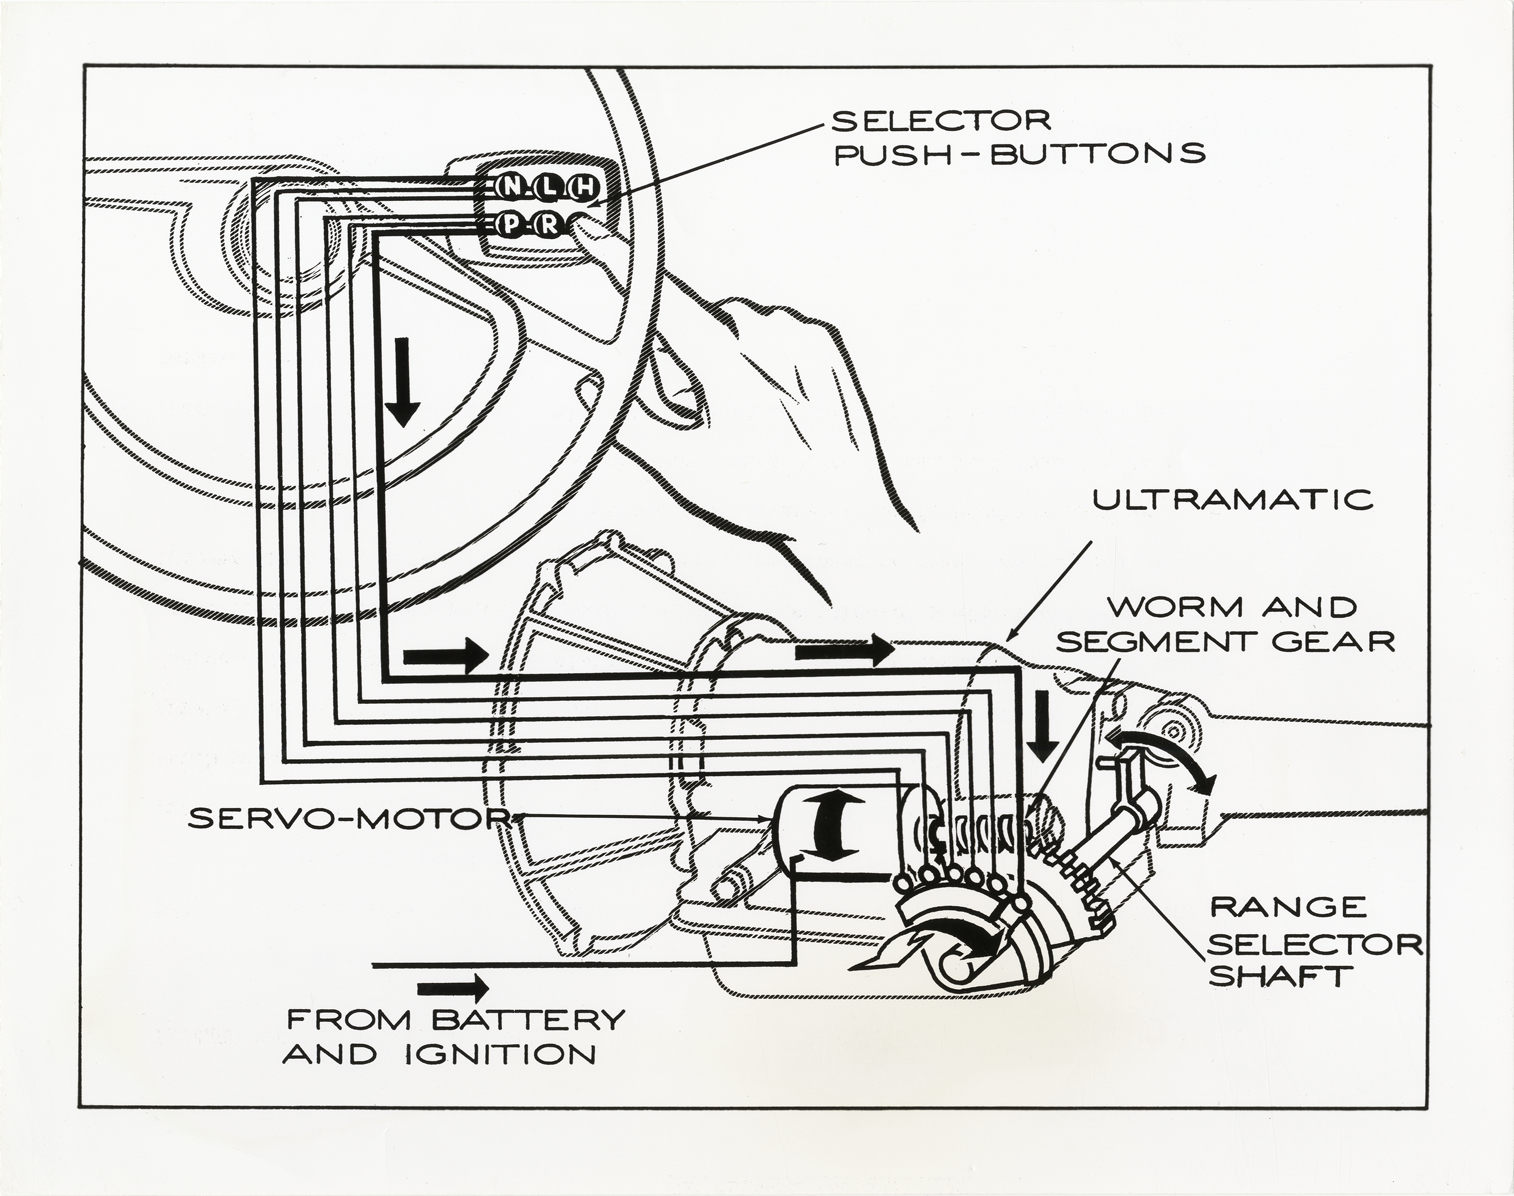 Electrical push-button Ultramatic transmission, 1956